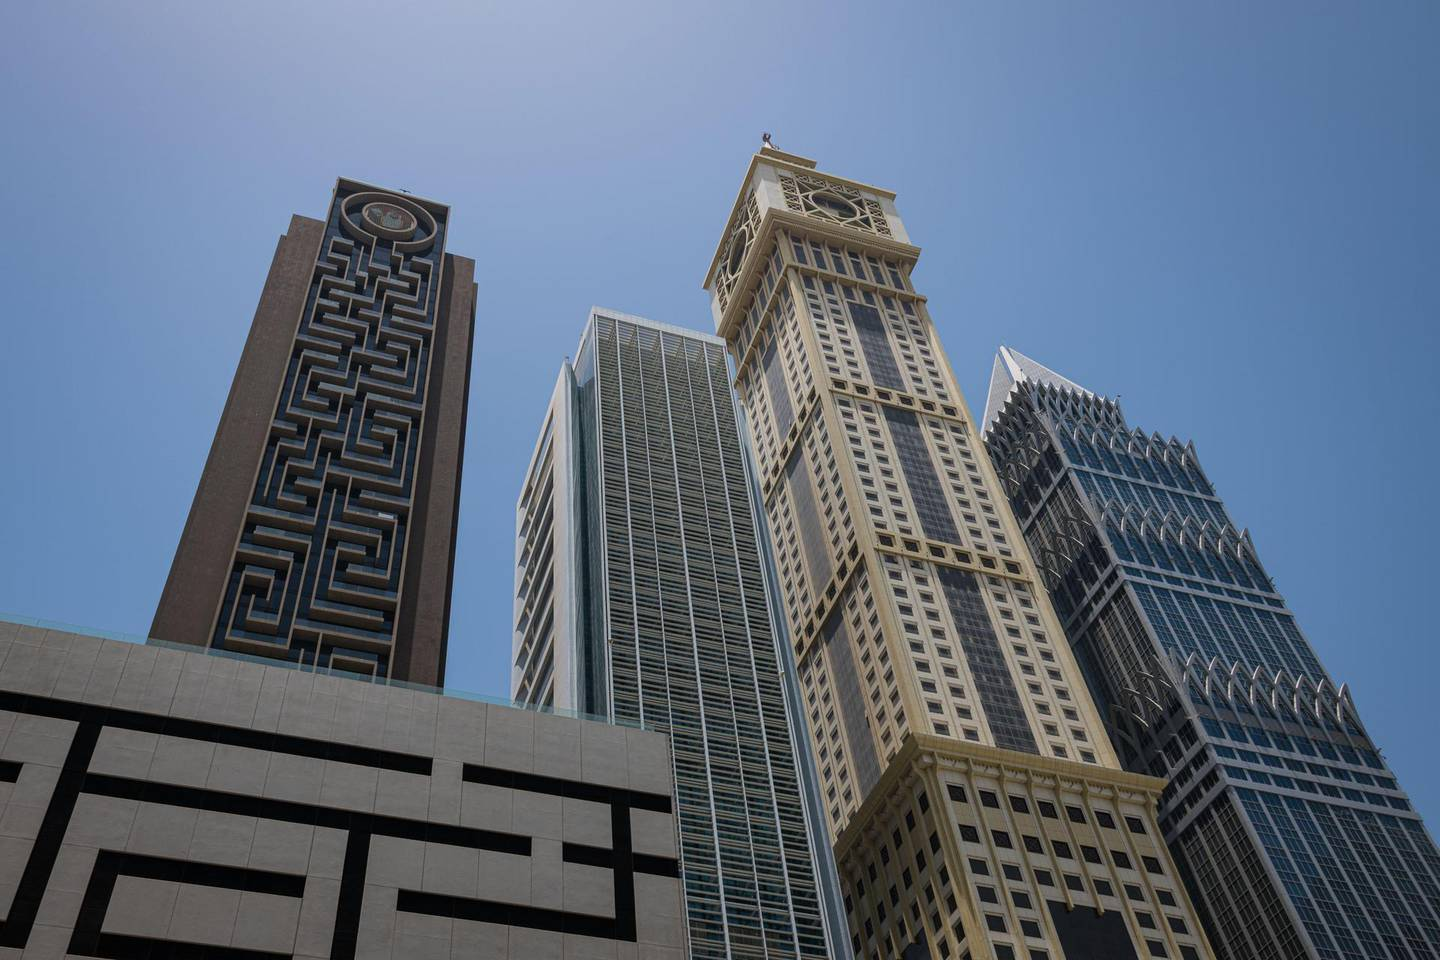 2D0WFD8 Skyscrapers on Sheikh Zayed Road between Financial Centre and Emirates Towers metro stations, Dubai, United Arab Emirates. Alamy